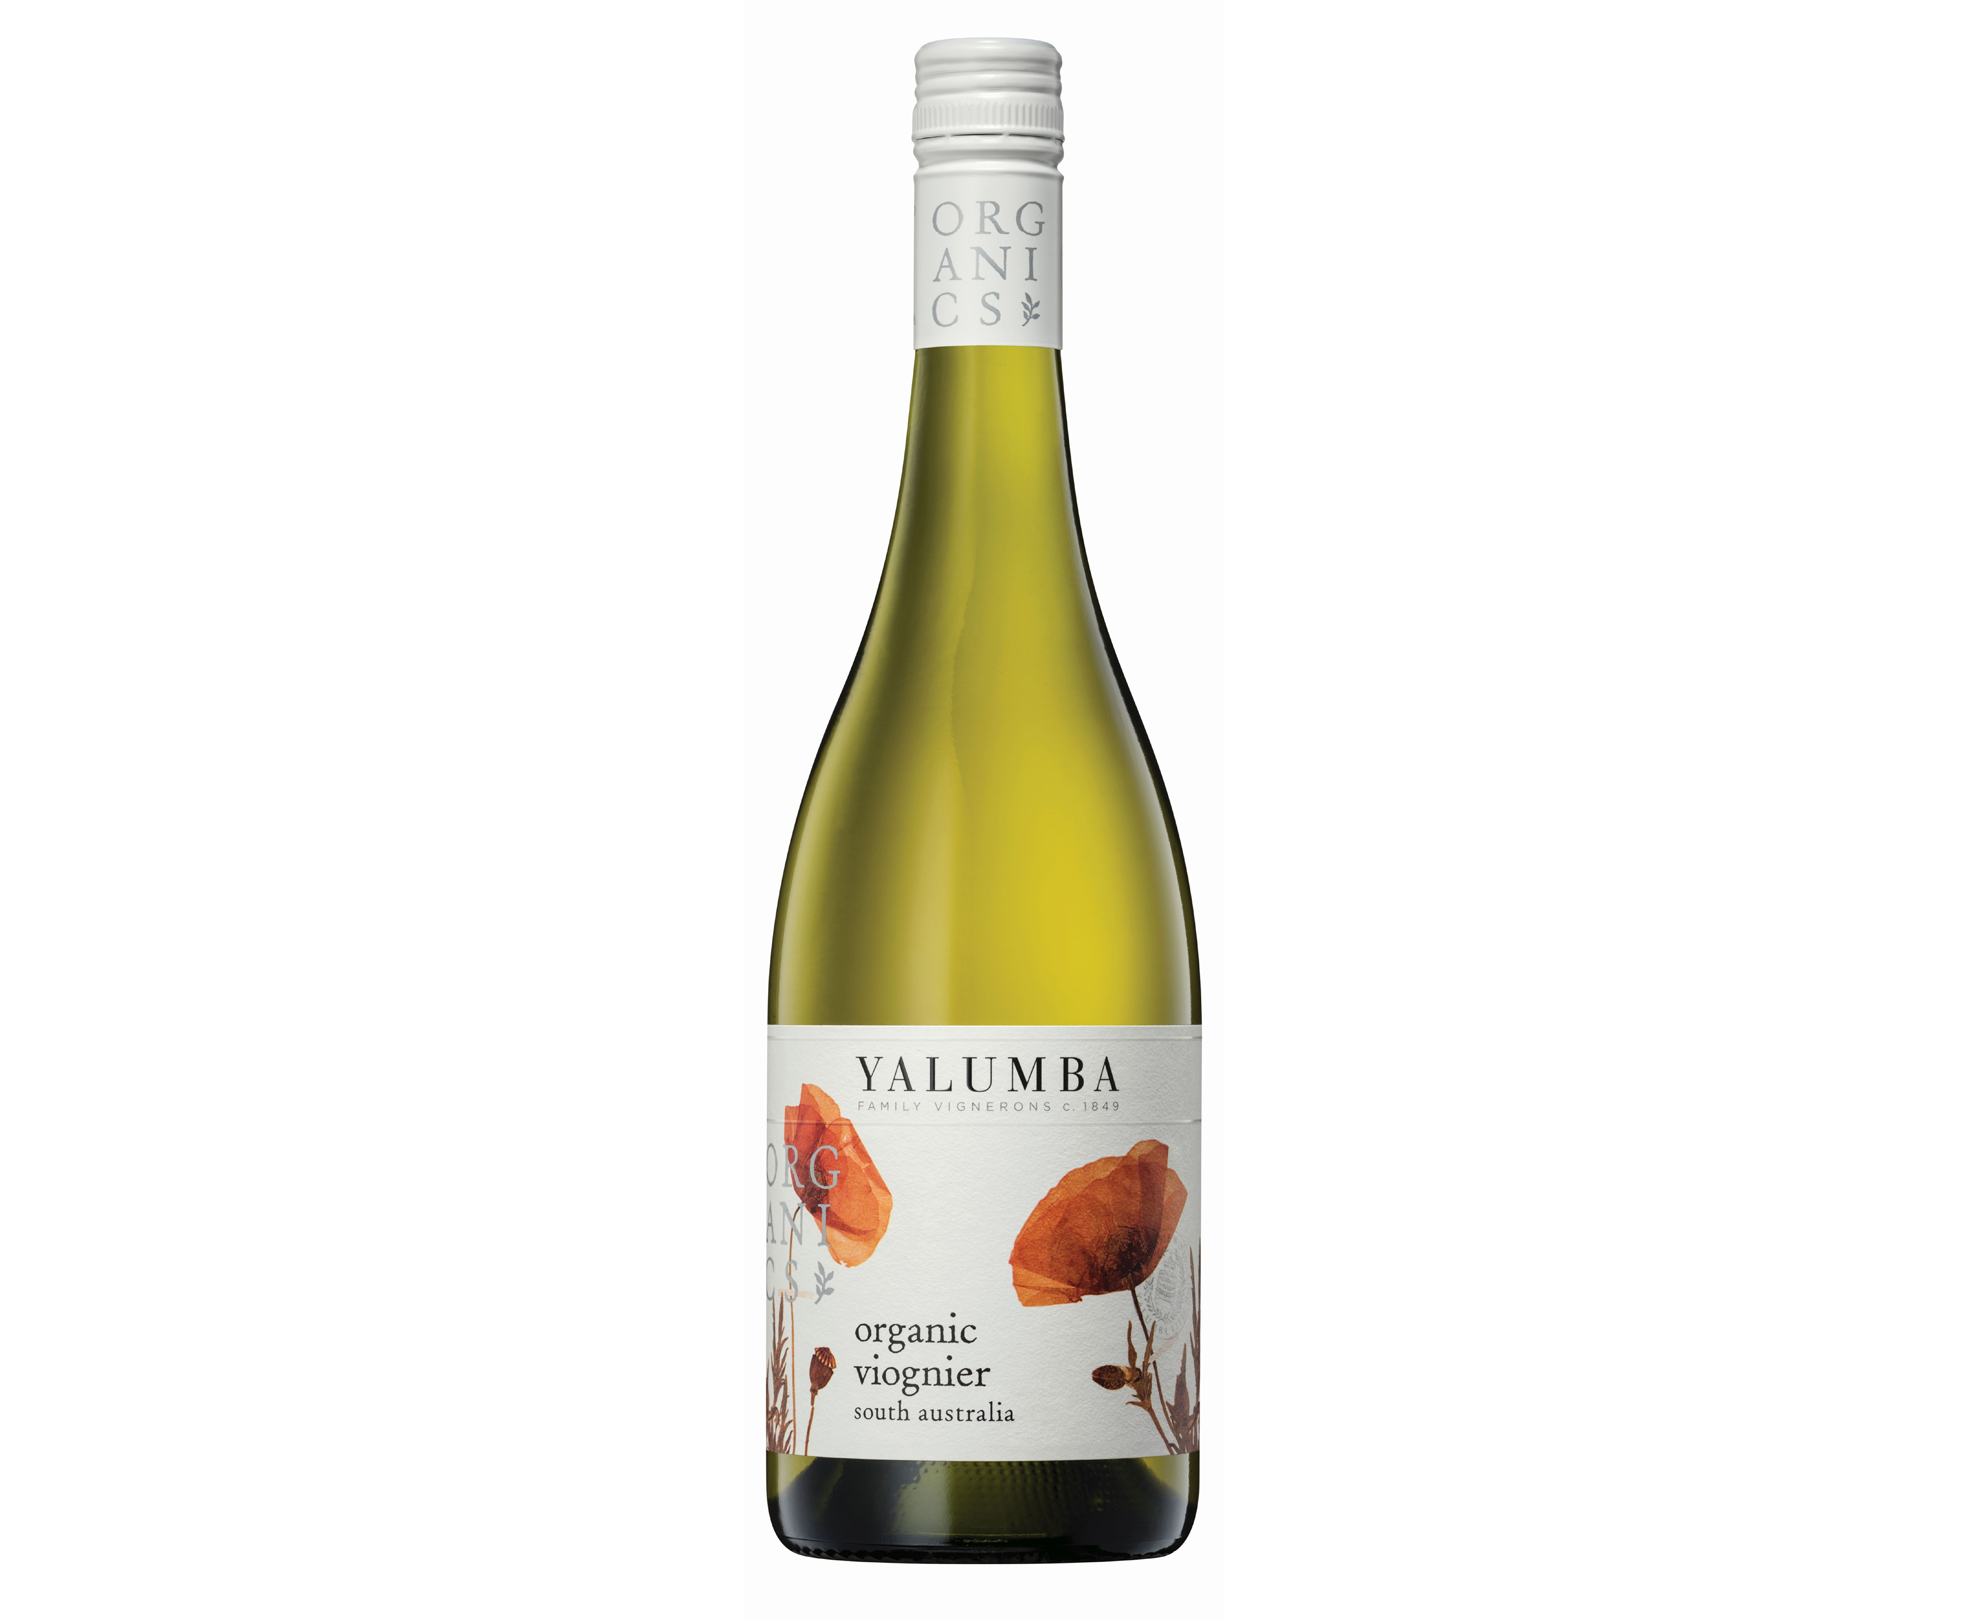 Yalumba Organic Viognier, South Australia